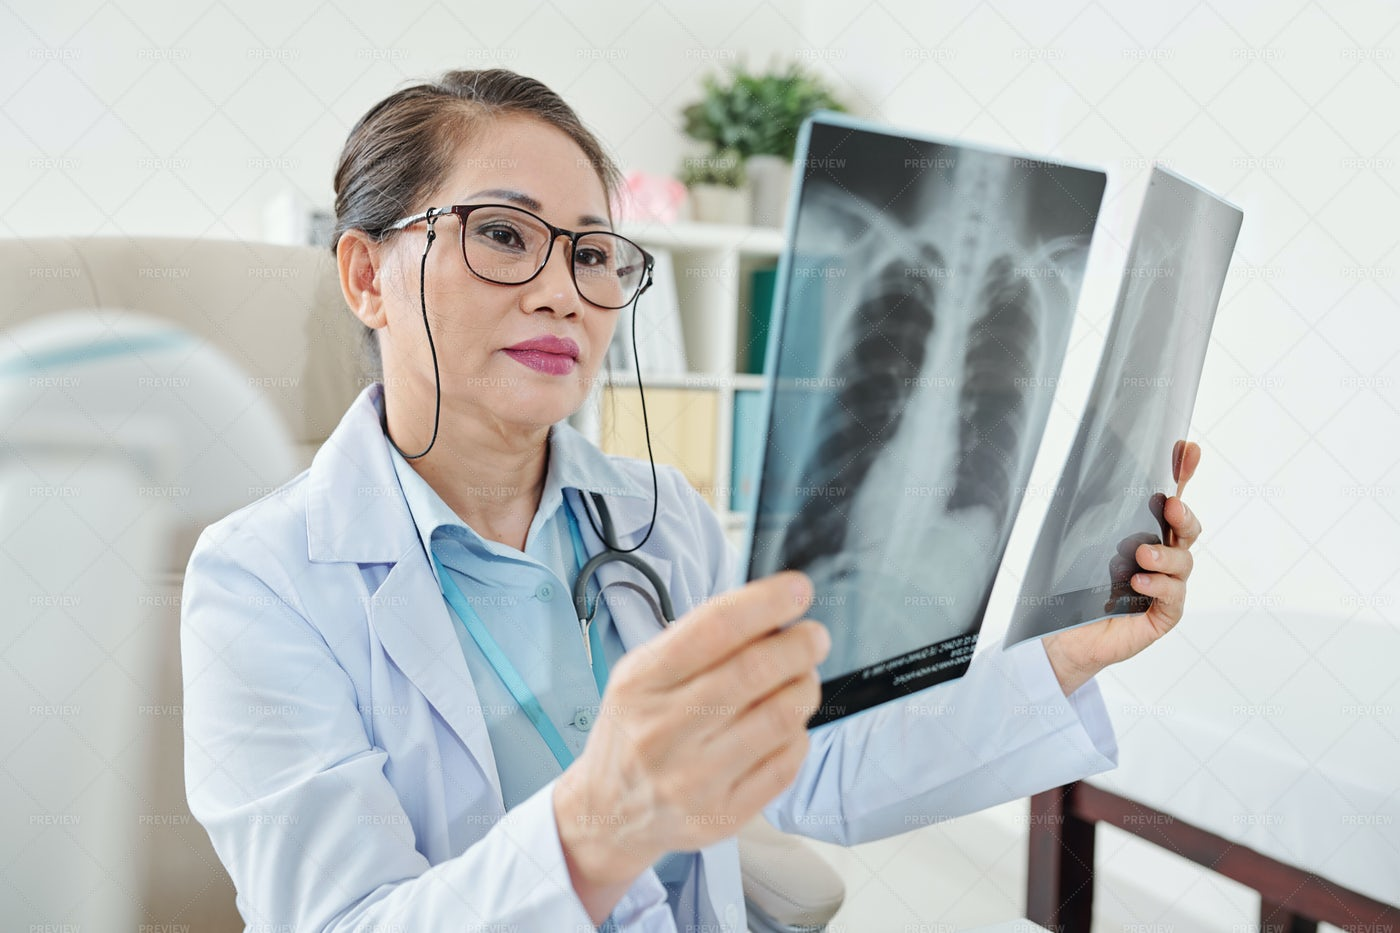 Doctor Looking At Chest X-rays: Stock Photos